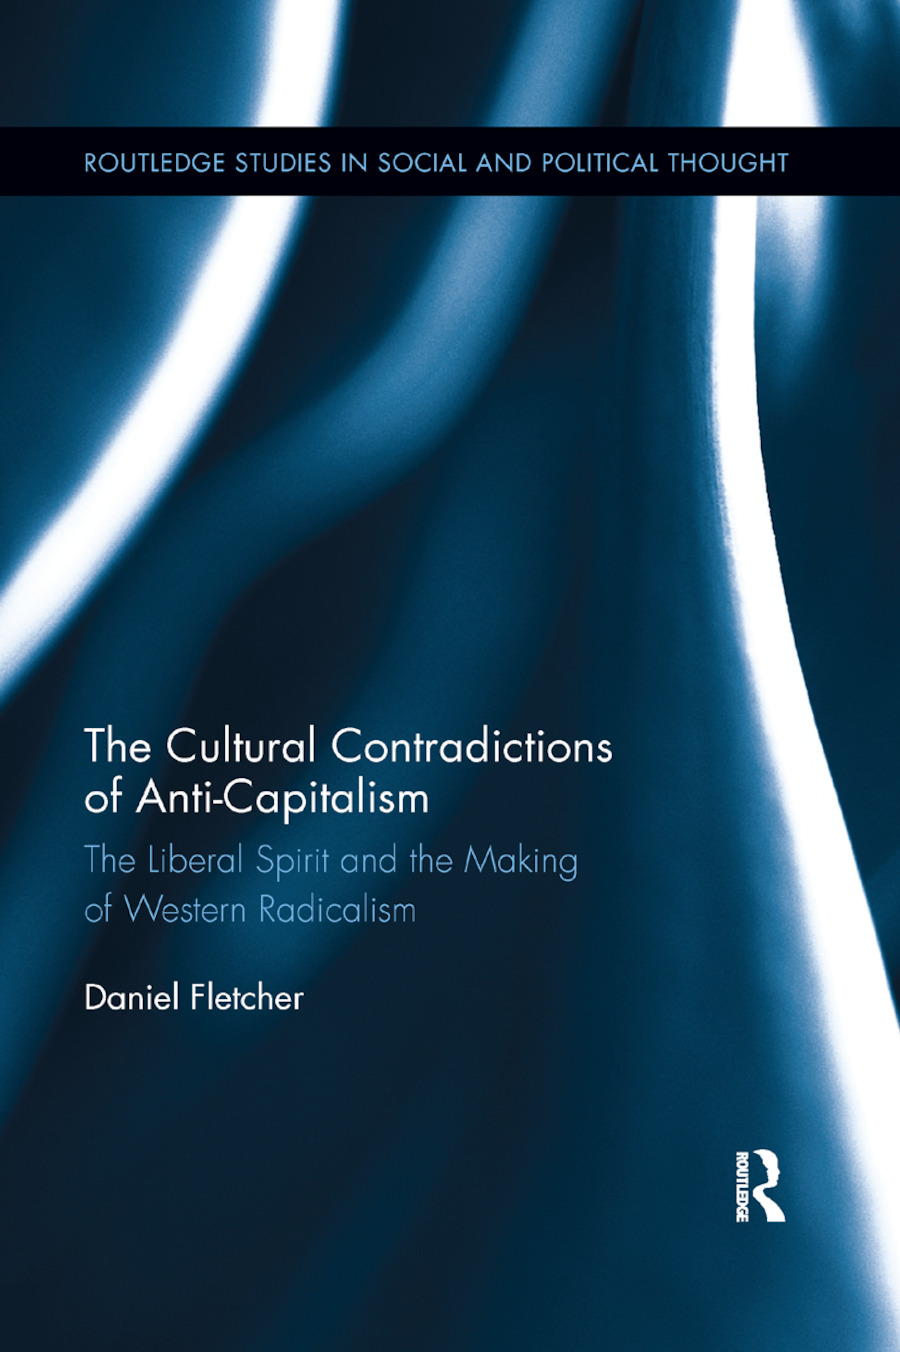 The Cultural Contradictions of Anti-Capitalism: The Liberal Spirit and the Making of Western Radicalism book cover